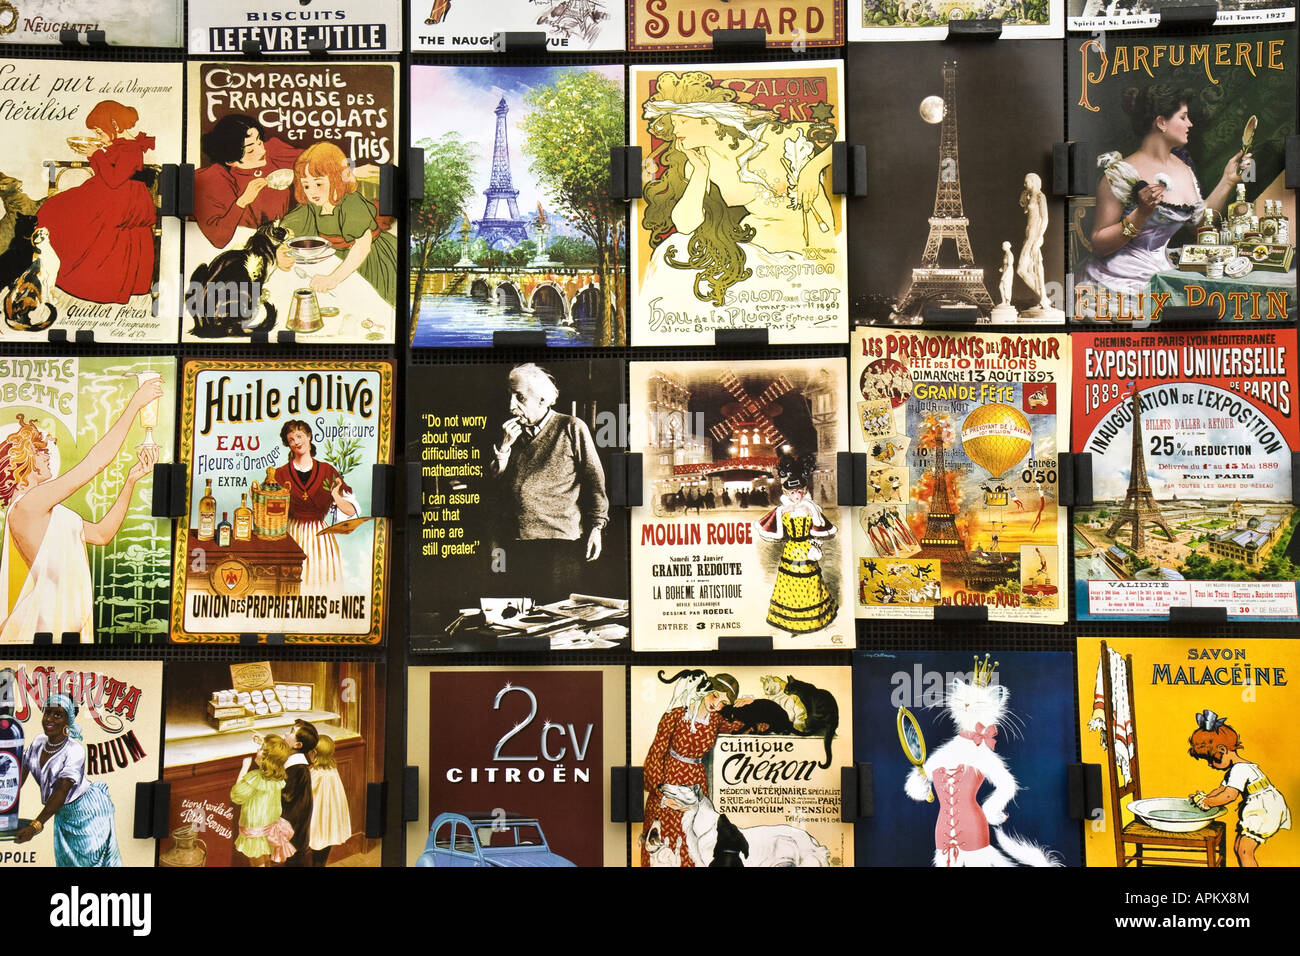 street sale pictures of old advertisements, France, Paris - Stock Image